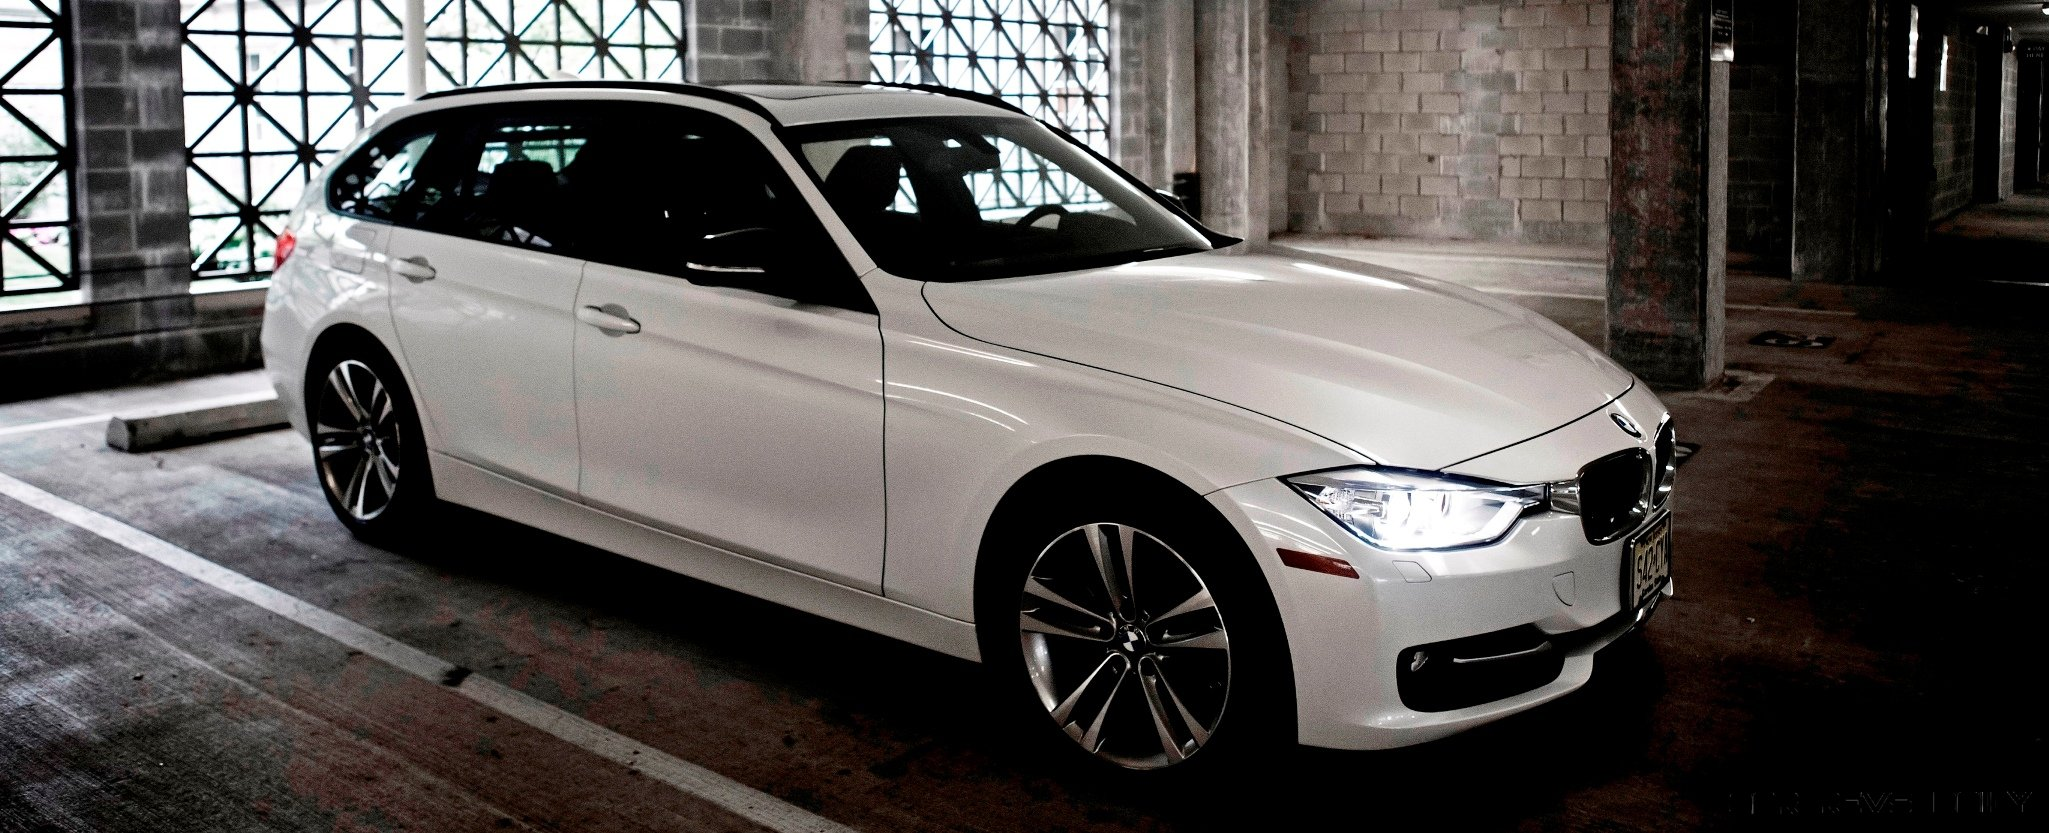 bmw 328d and 328i wagons back in u s for 2014 buyers guide car revs. Black Bedroom Furniture Sets. Home Design Ideas